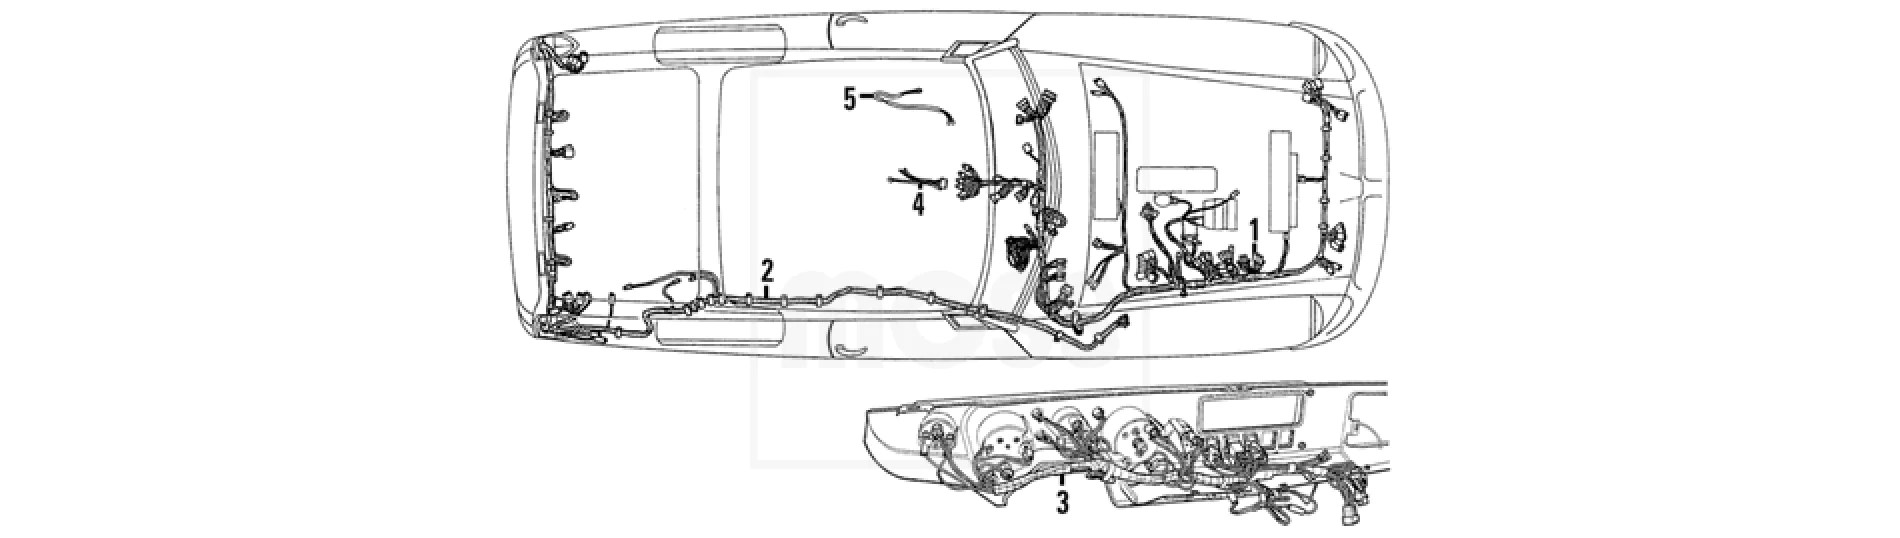 mgb wiring harness wiring diagram article mgb c v8 electrical wiring looms fittings wiring [ 1900 x 538 Pixel ]